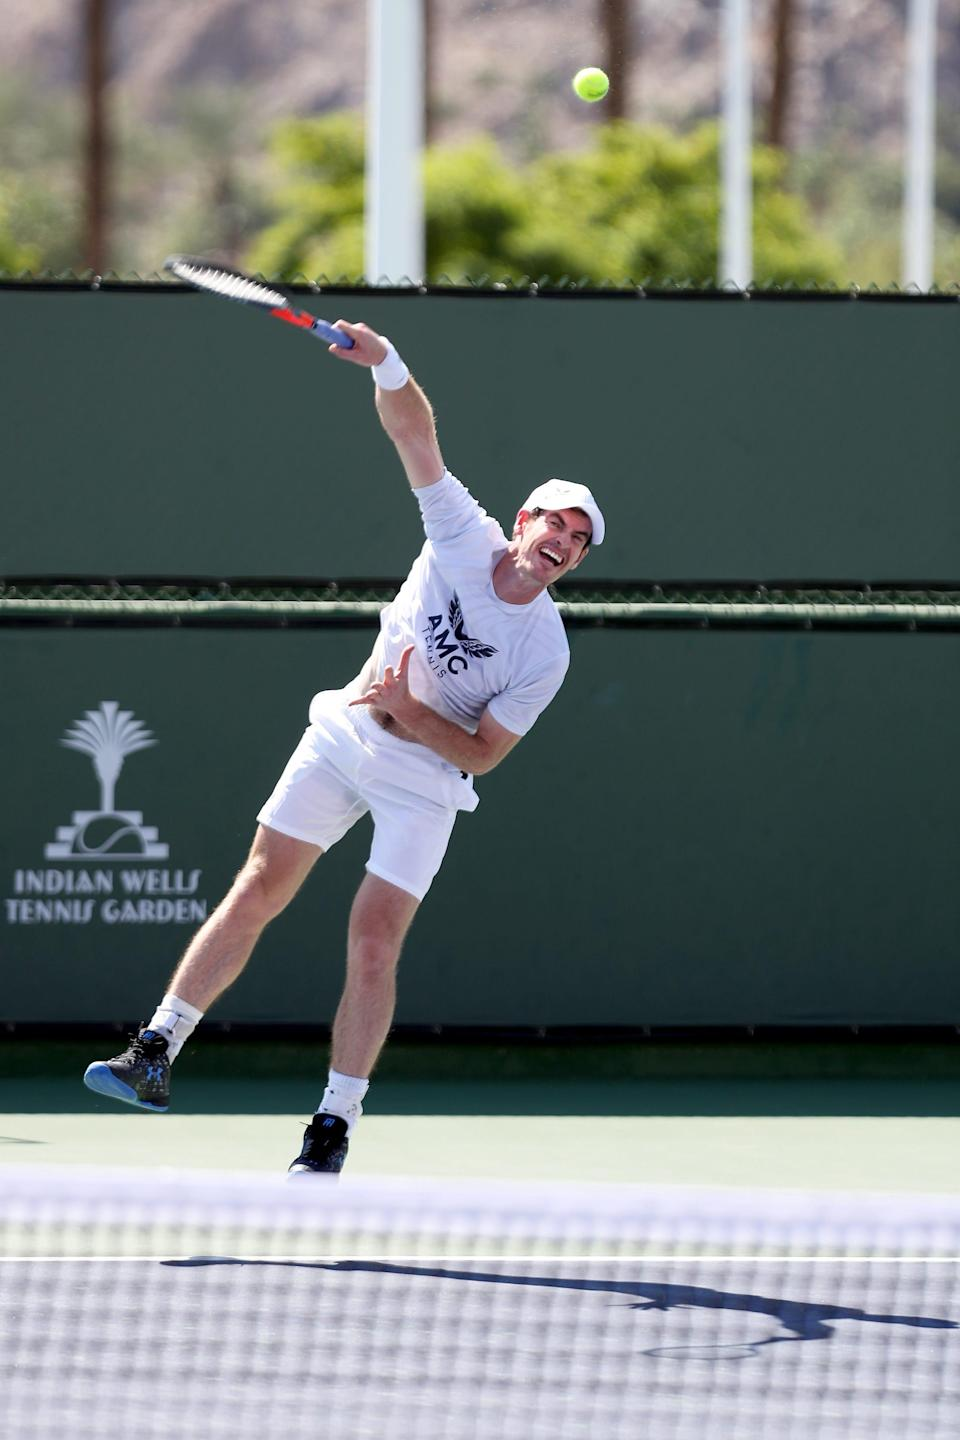 Andy Murray practices at the Indian Wells Tennis Garden during at the BNP Paribas Open in Indian Wells, Calif., on October 5, 2021.